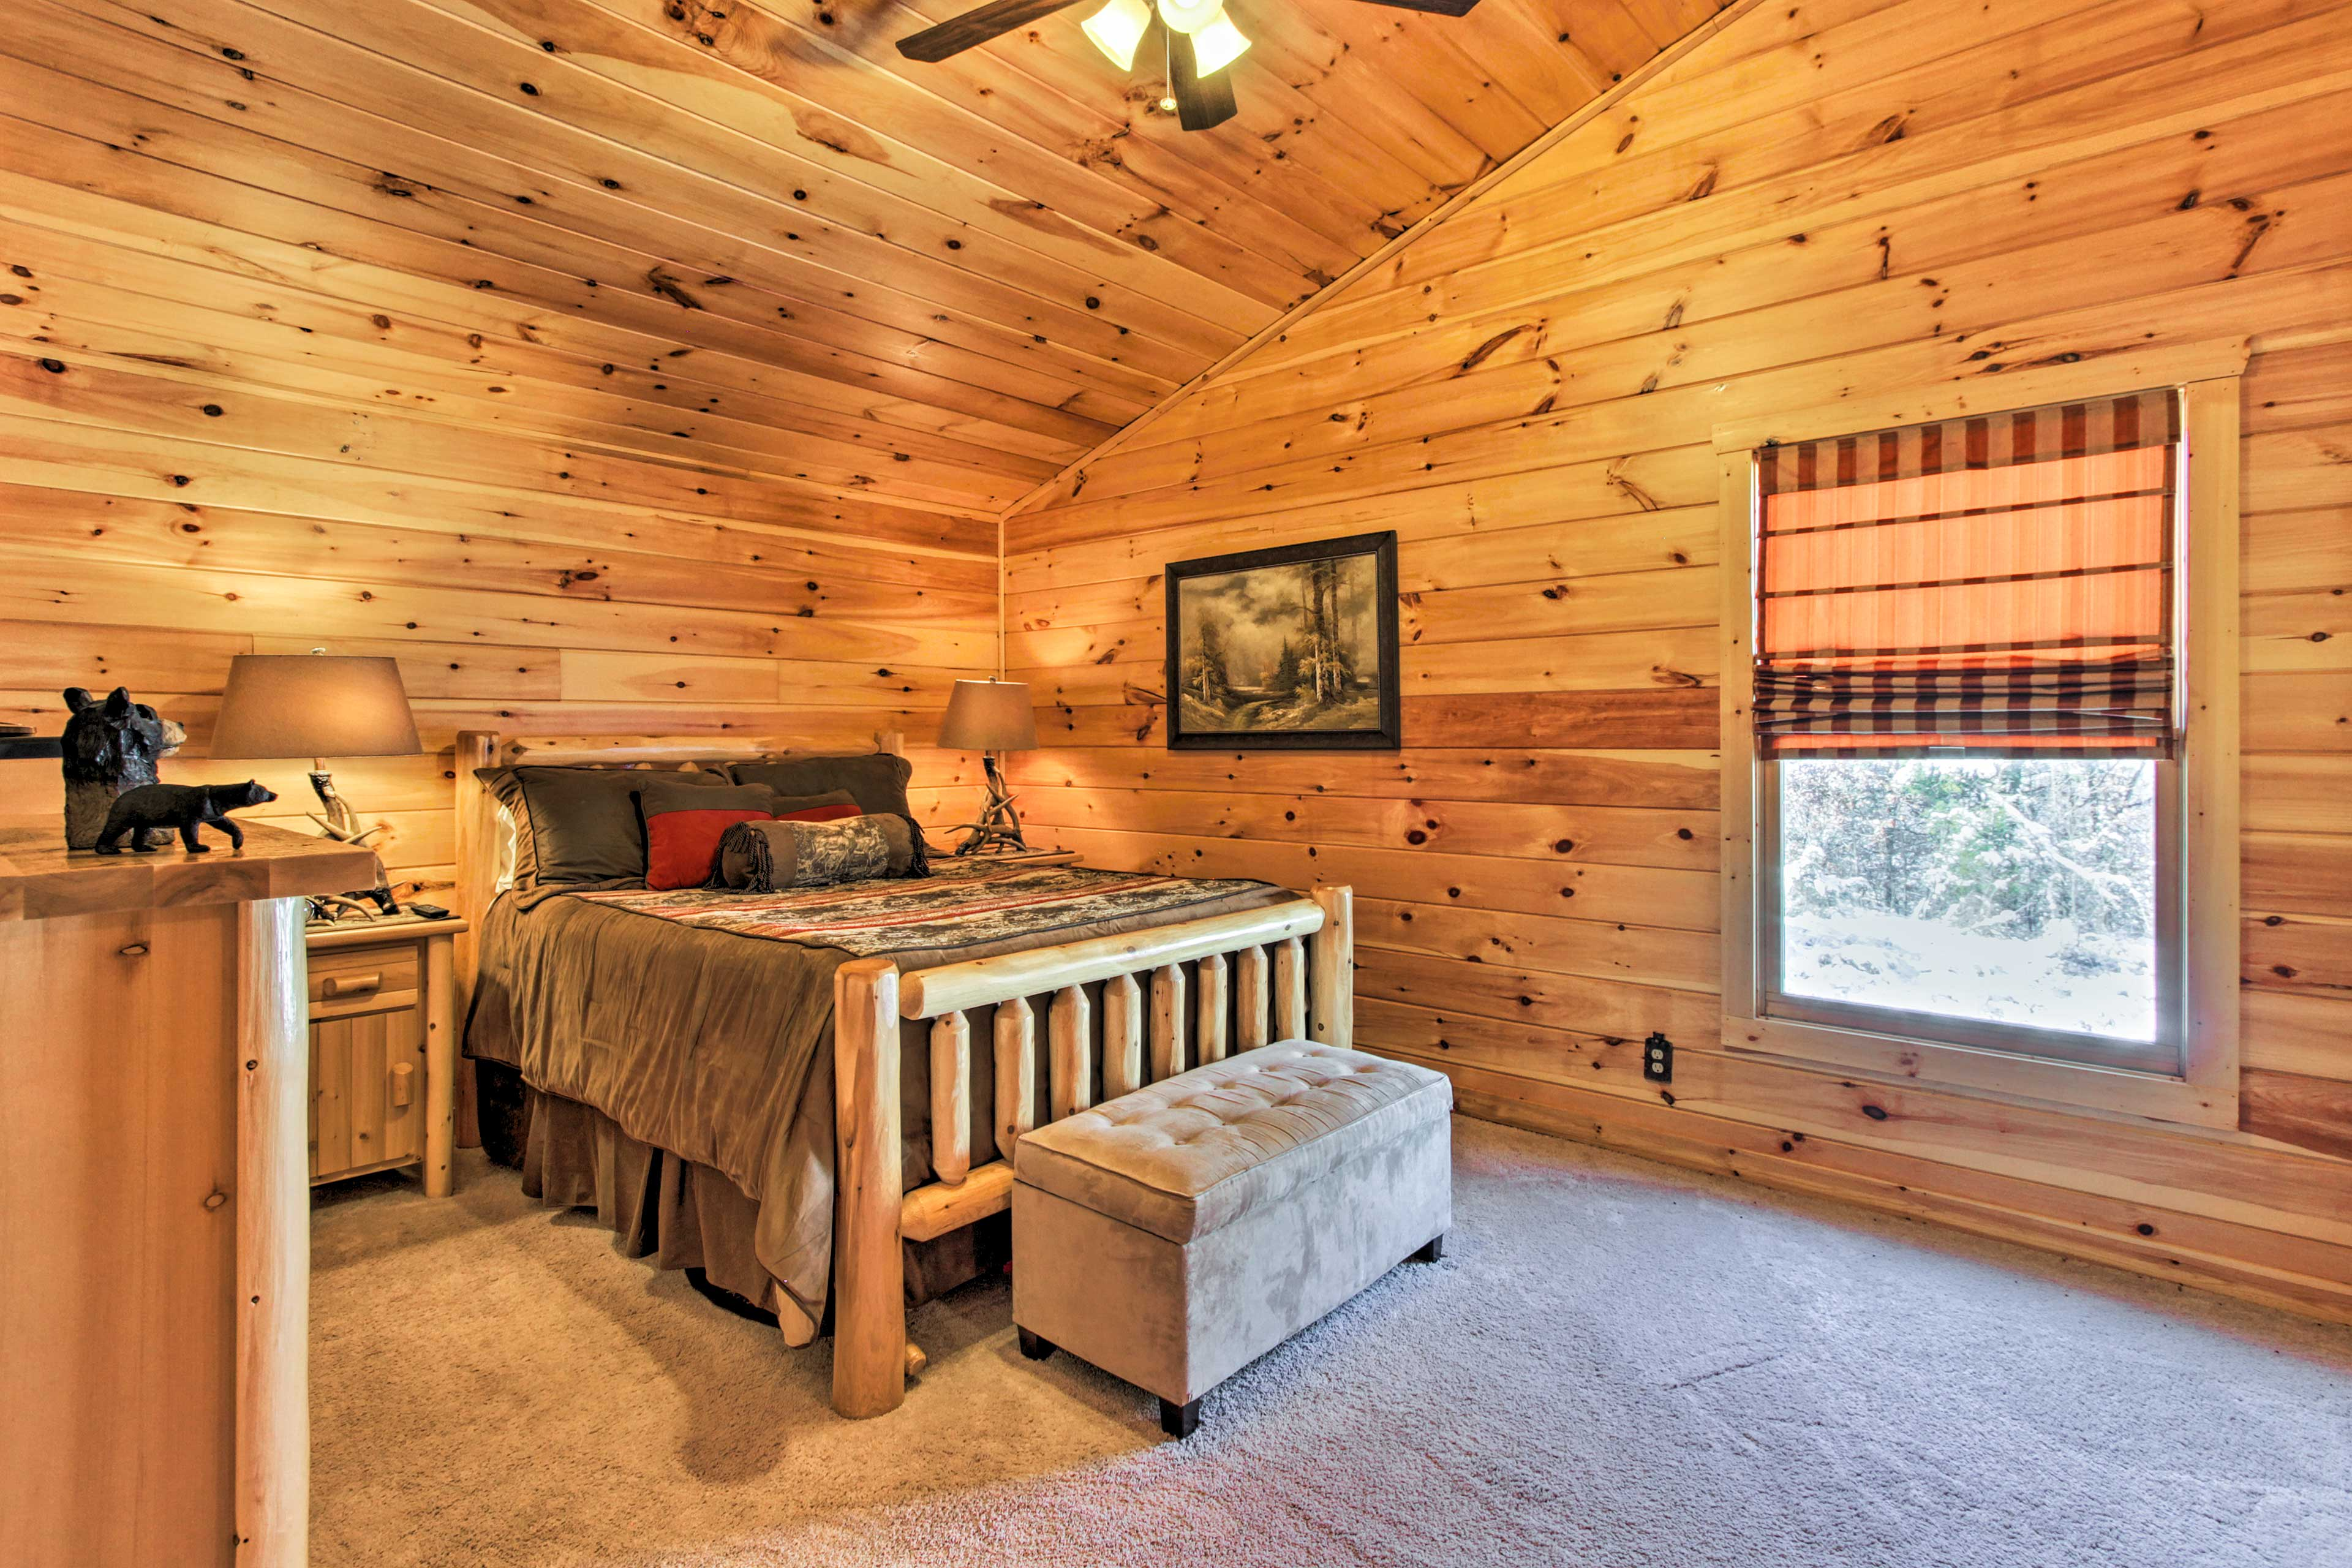 The spacious upstairs bedroom is perfect for accommodating 2.